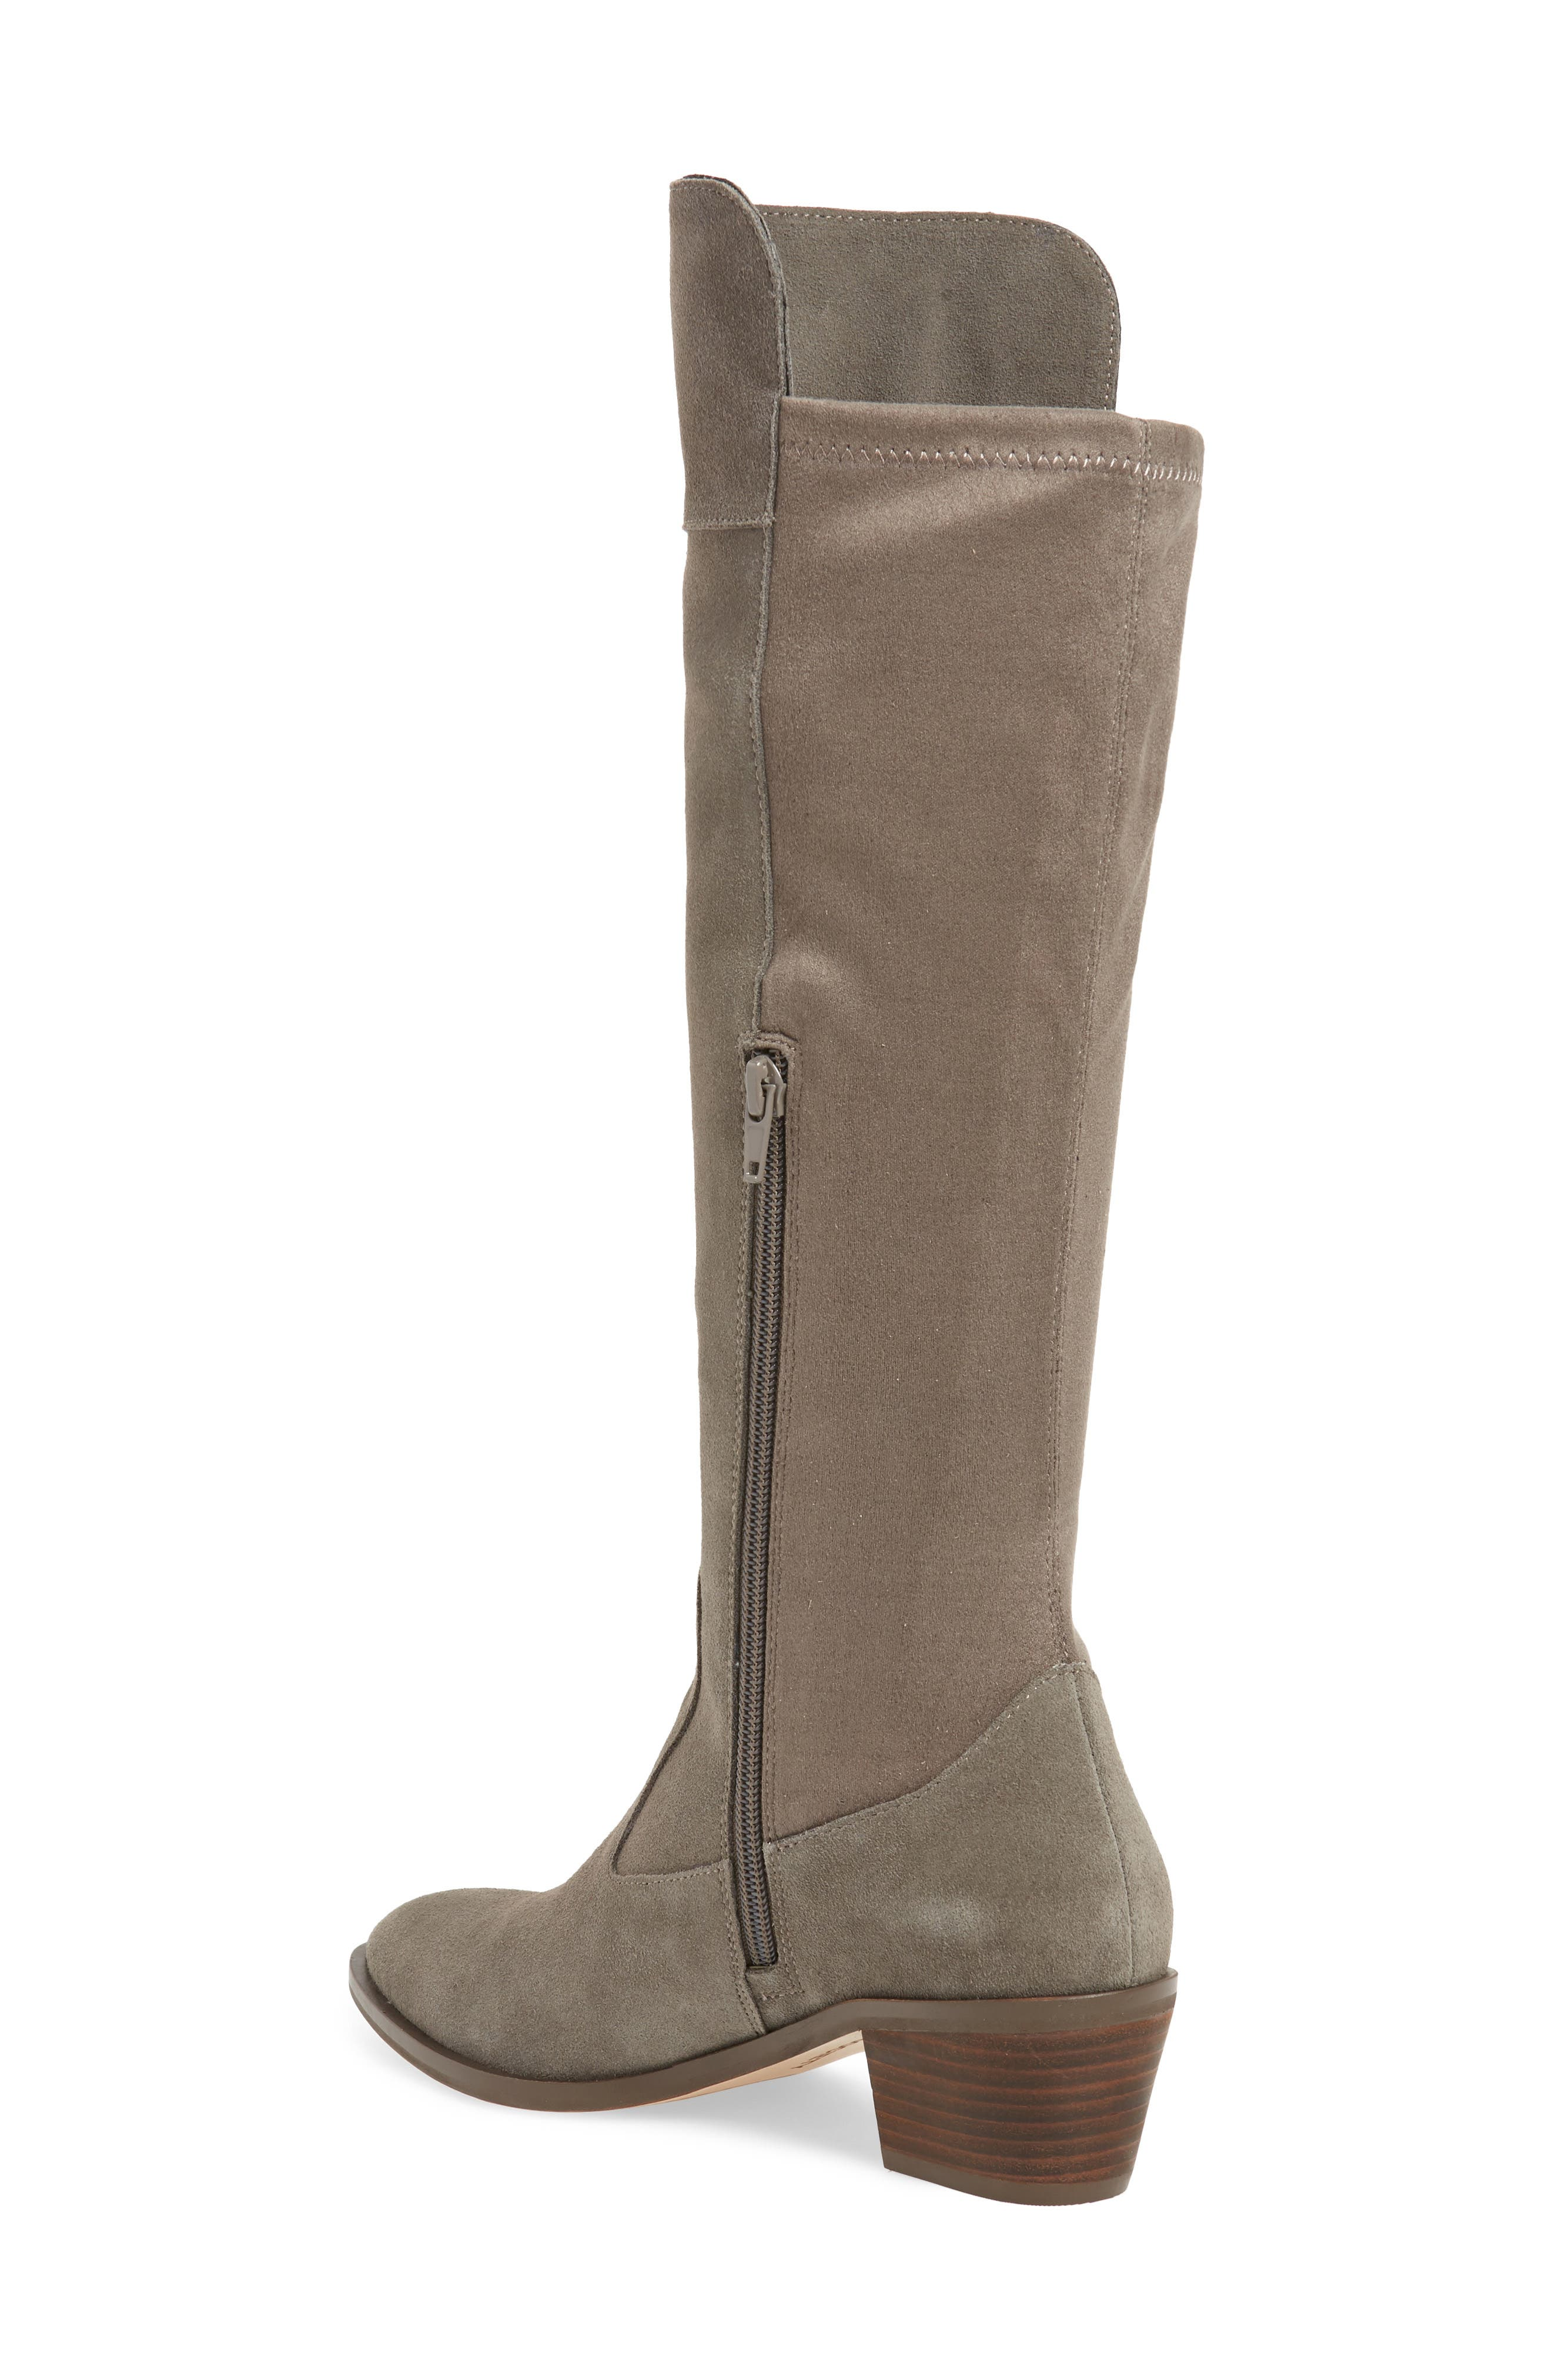 SOLE SOCIETY,                             Noamie Knee High Boot,                             Alternate thumbnail 2, color,                             LONDON RAIN SUEDE